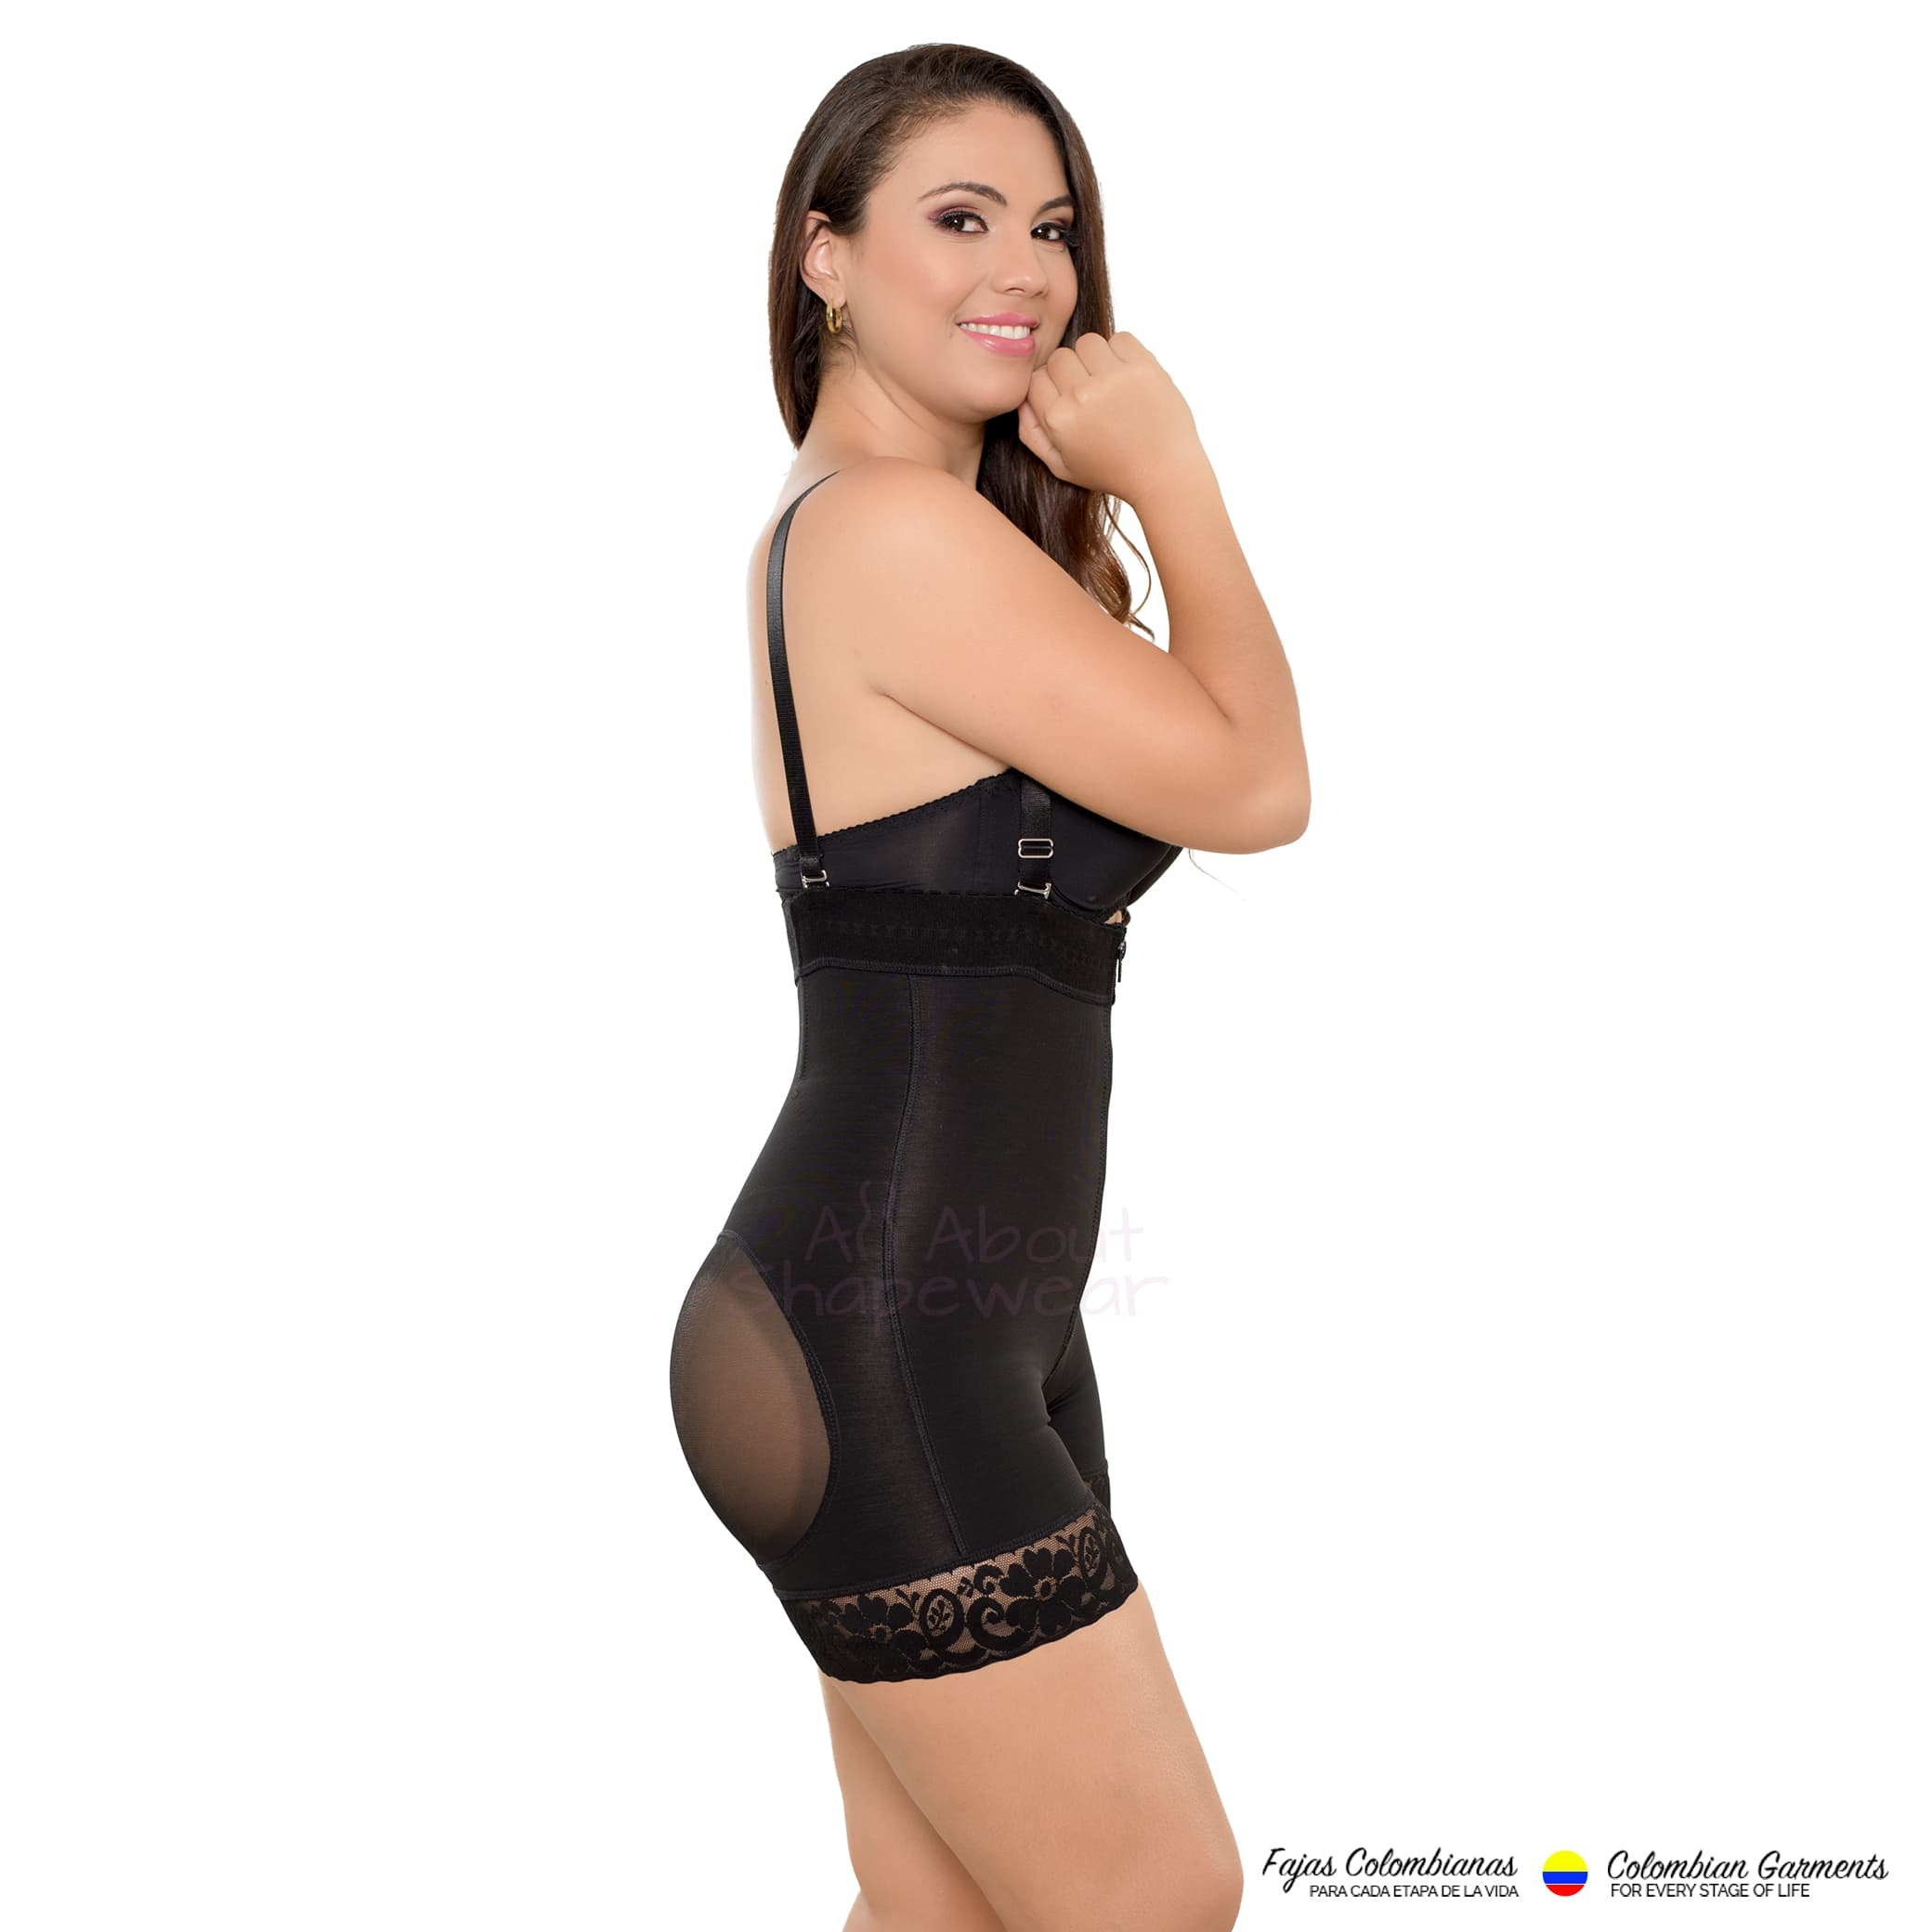 6abed7a978c70 Fajas Colombianas Body Shaper Strapless Short Style with a Natural Lift Ref  030 - Fajas Colombianas